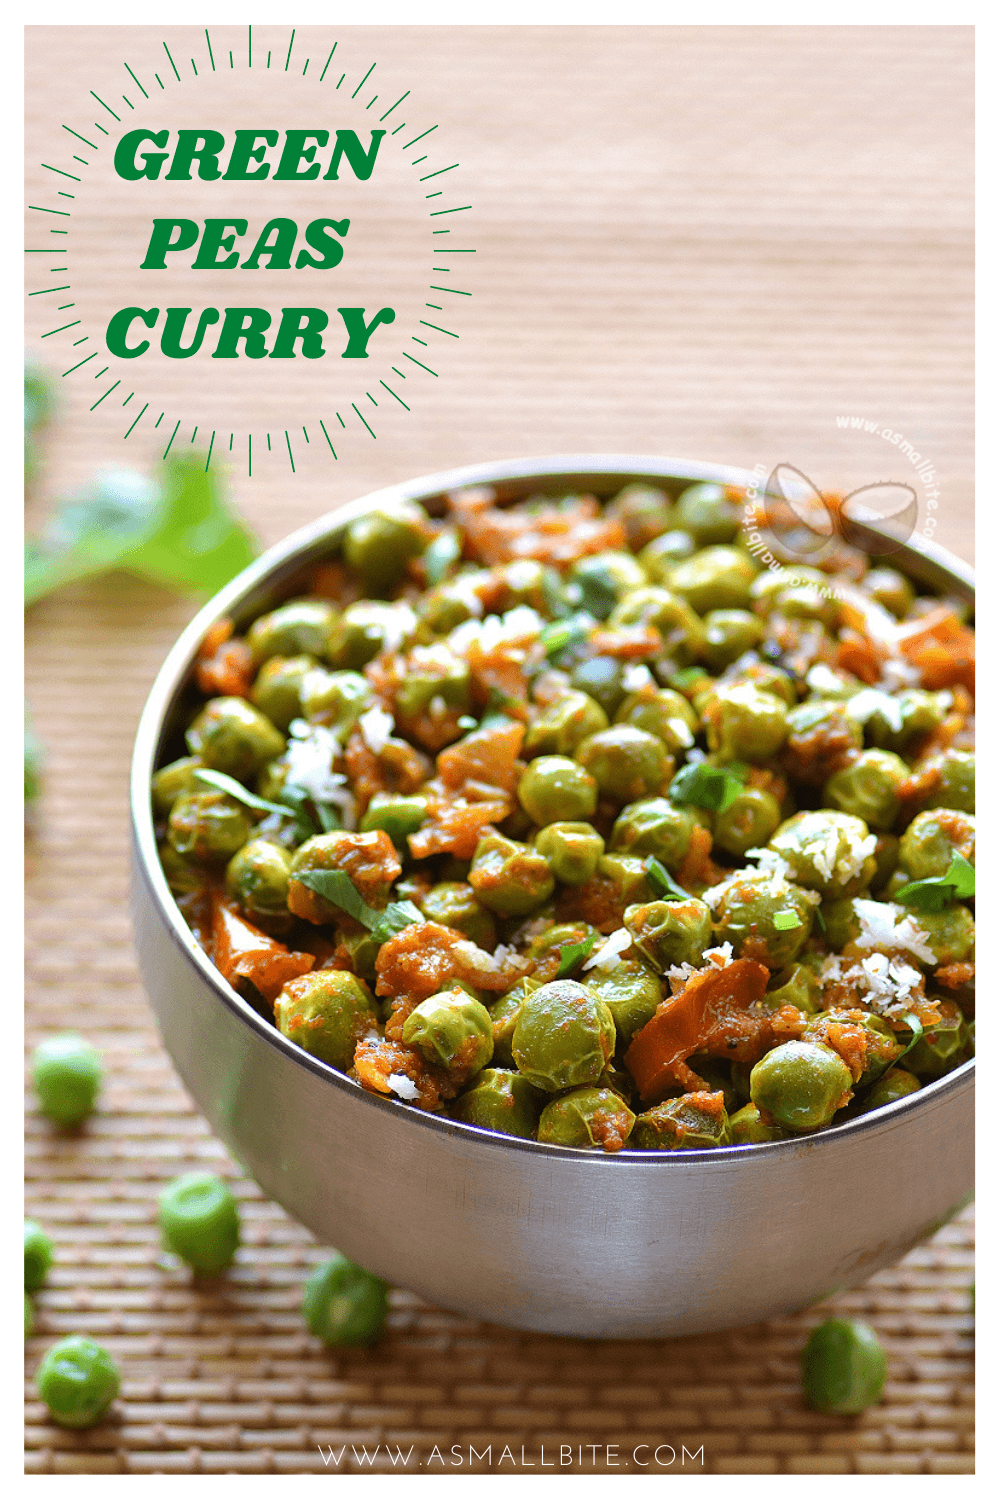 Green Peas Curry